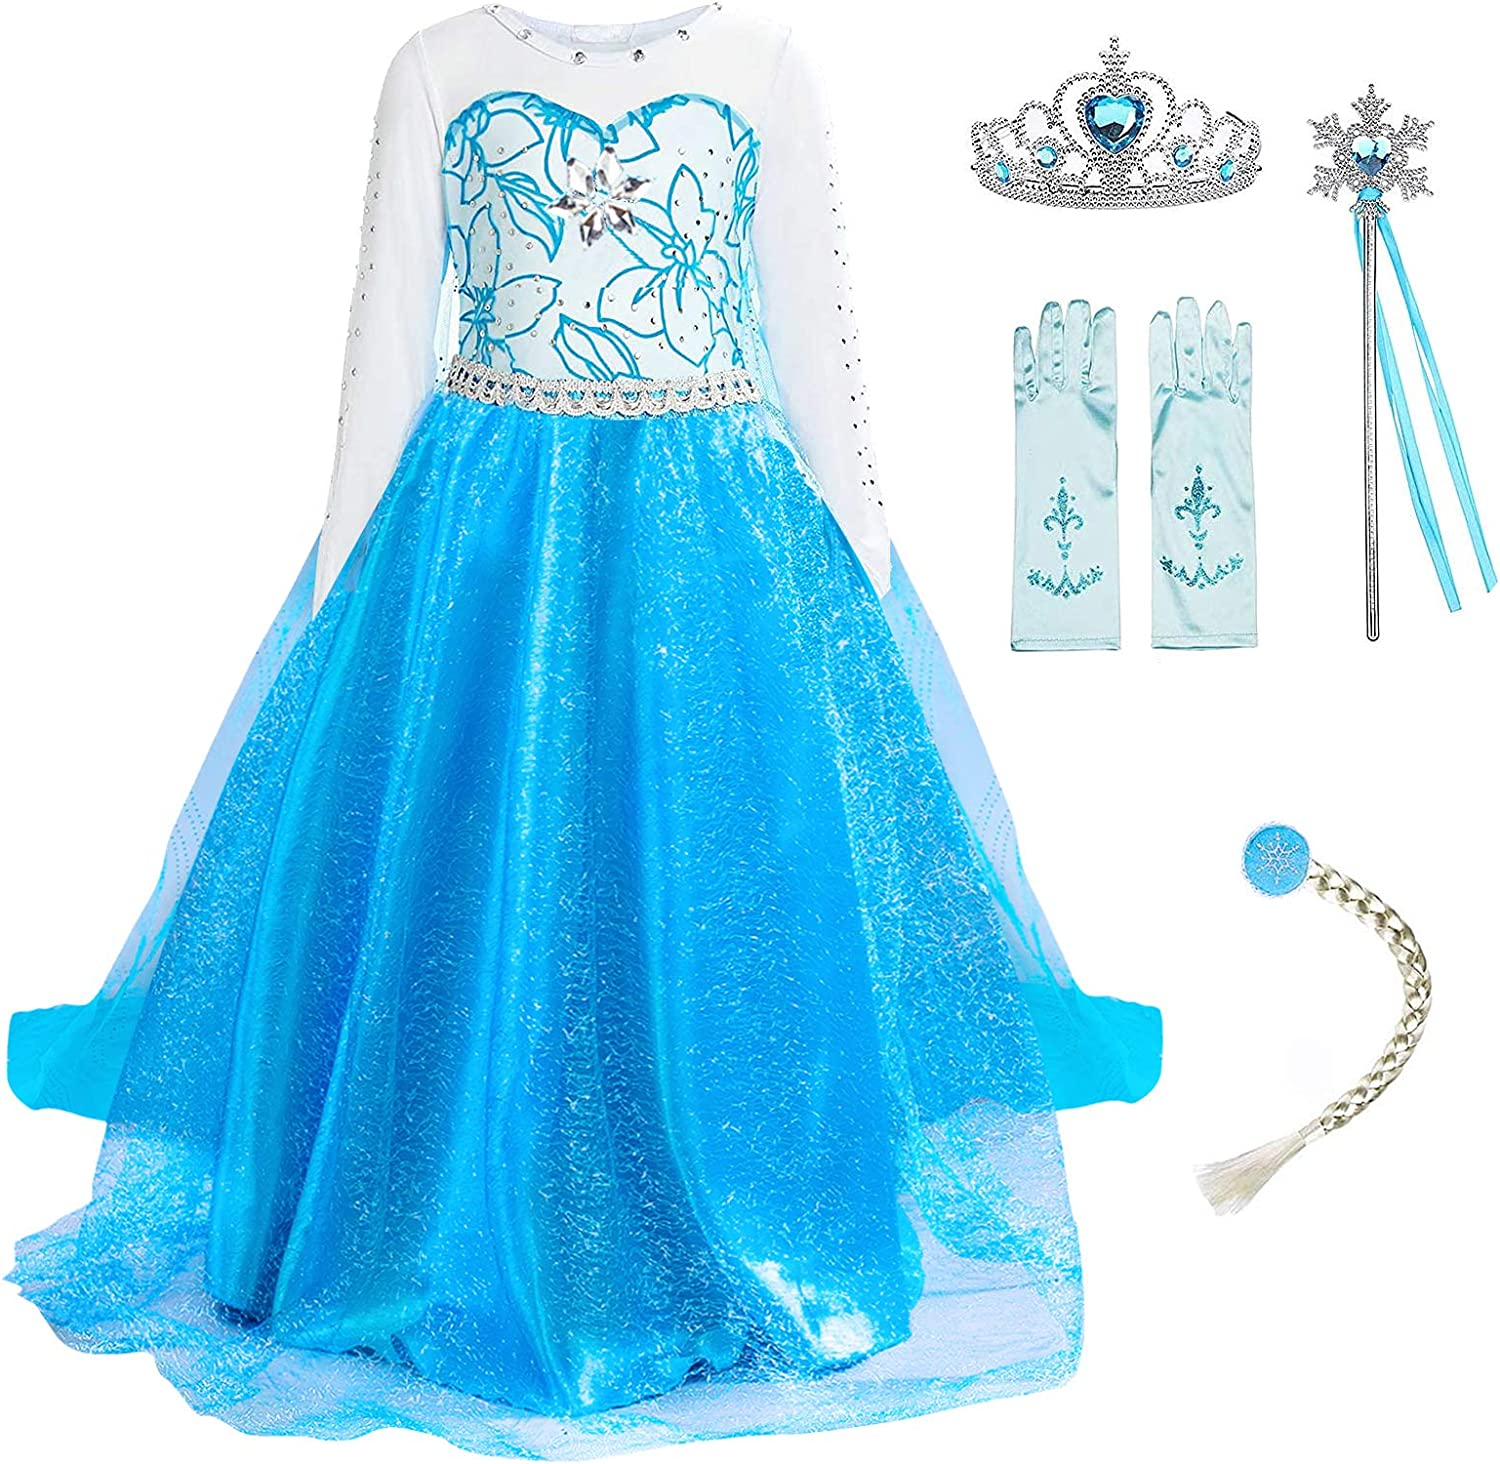 Challenge the lowest price guest dream Girls Princess Dresses Hallo Japan Maker New Costume Clothe up Party